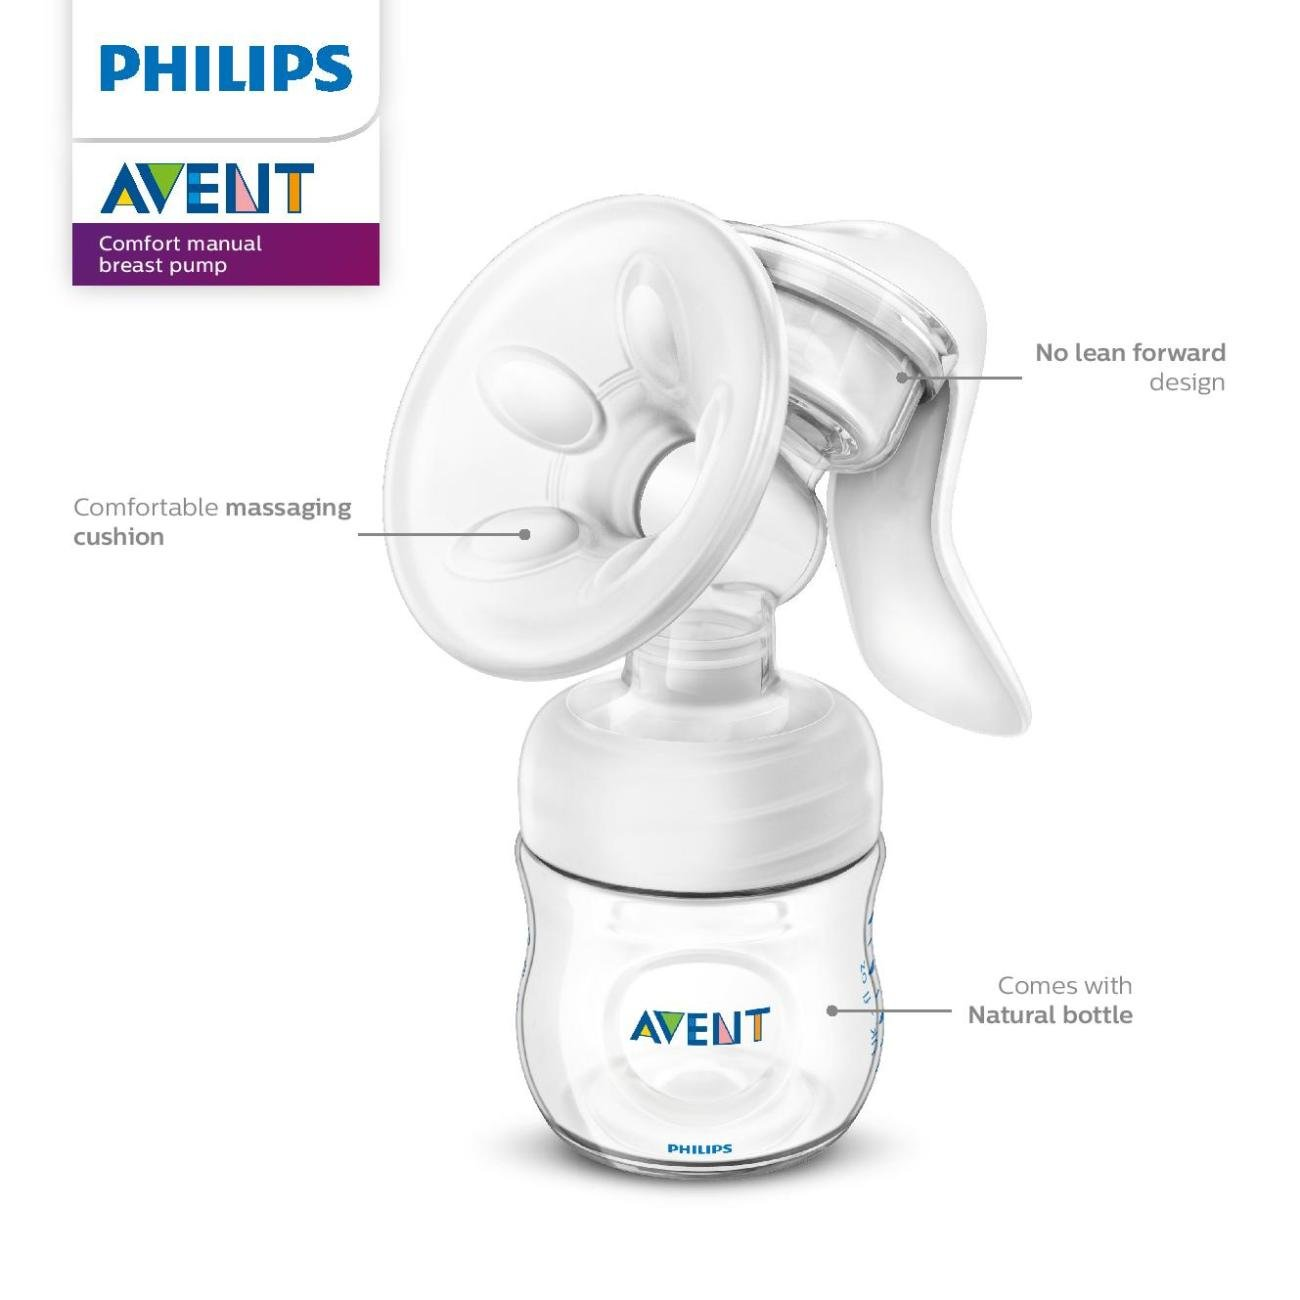 philips avent breast pump instructions